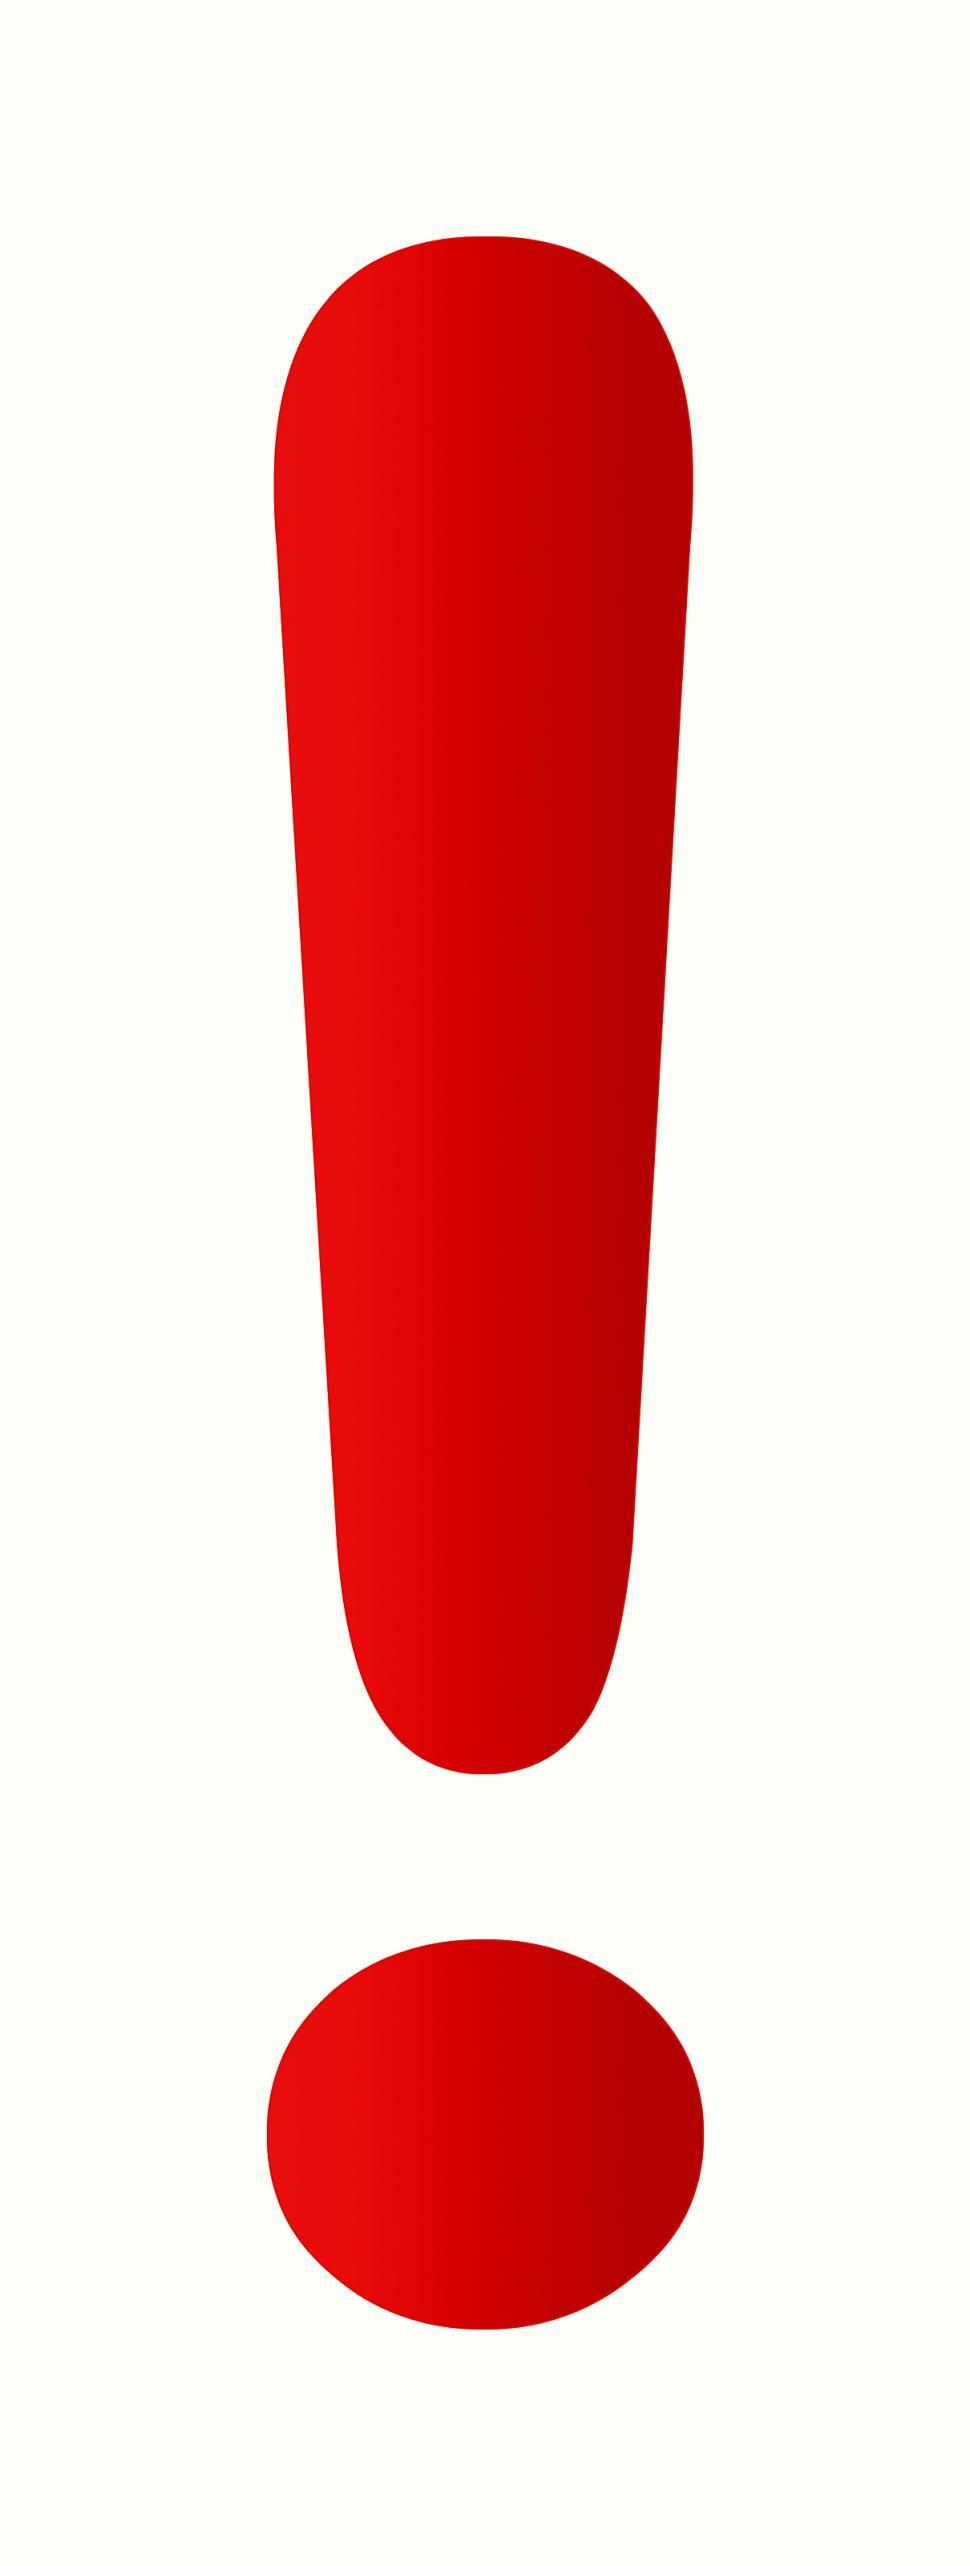 Download Free Stock HD Photo of Red Exclamation Mark Online